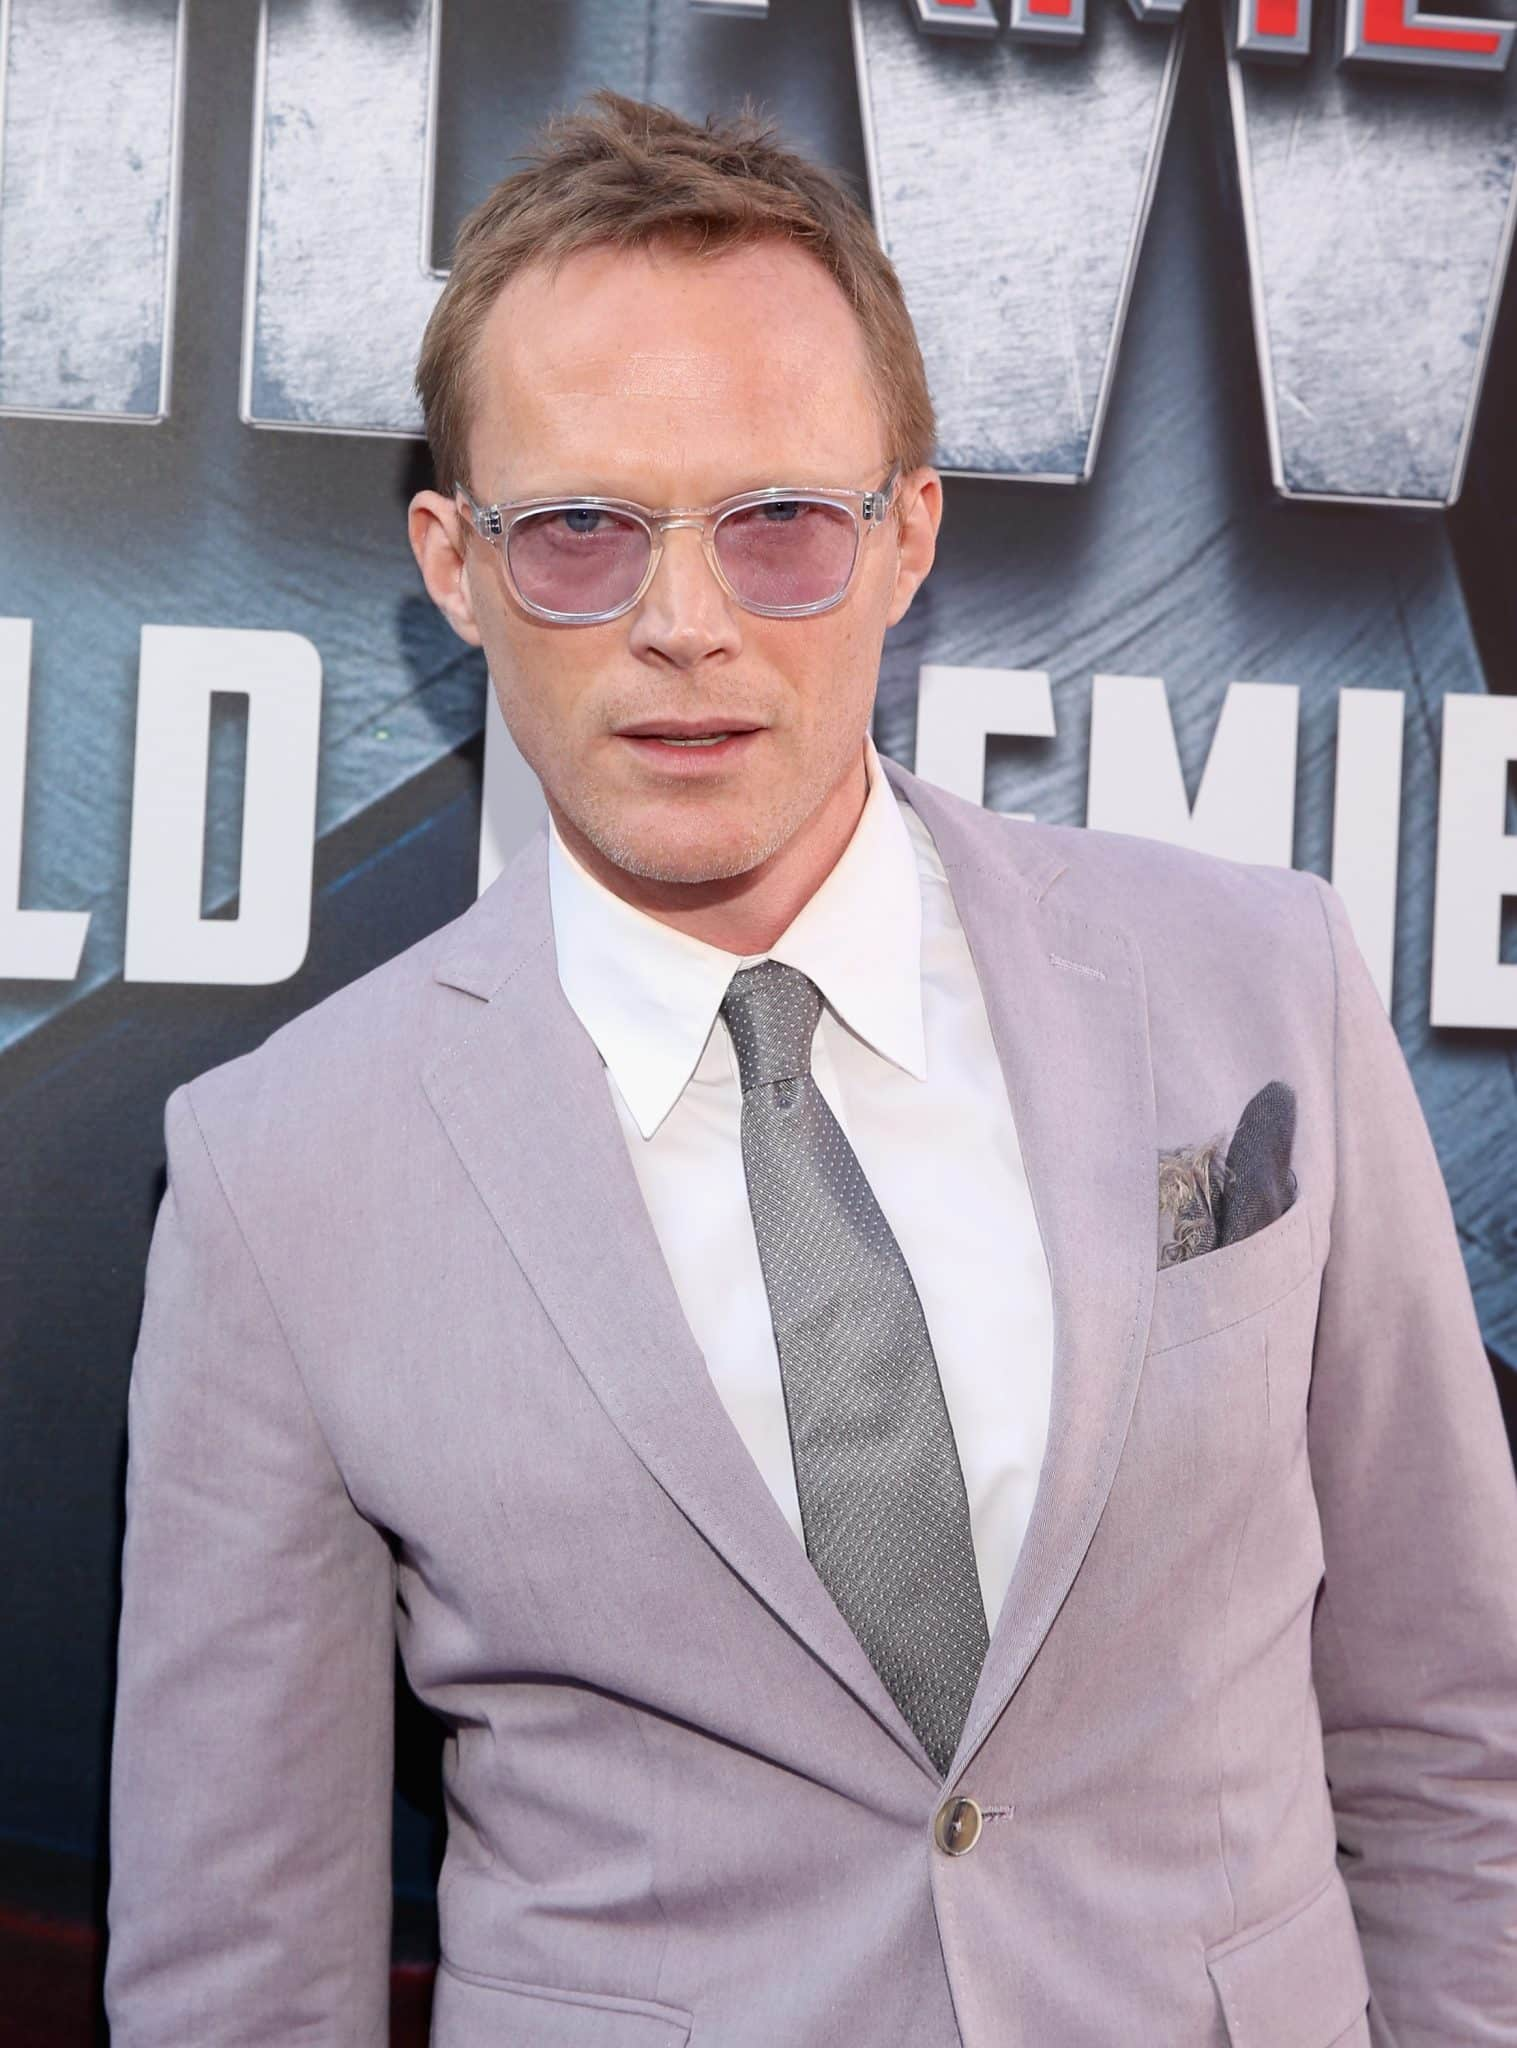 """HOLLYWOOD, CALIFORNIA - APRIL 12: Actor Paul Bettany attends The World Premiere of Marvel's """"Captain America: Civil War"""" at Dolby Theatre on April 12, 2016 in Los Angeles, California. (Photo by Jesse Grant/Getty Images for Disney) *** Local Caption *** Paul Bettany"""